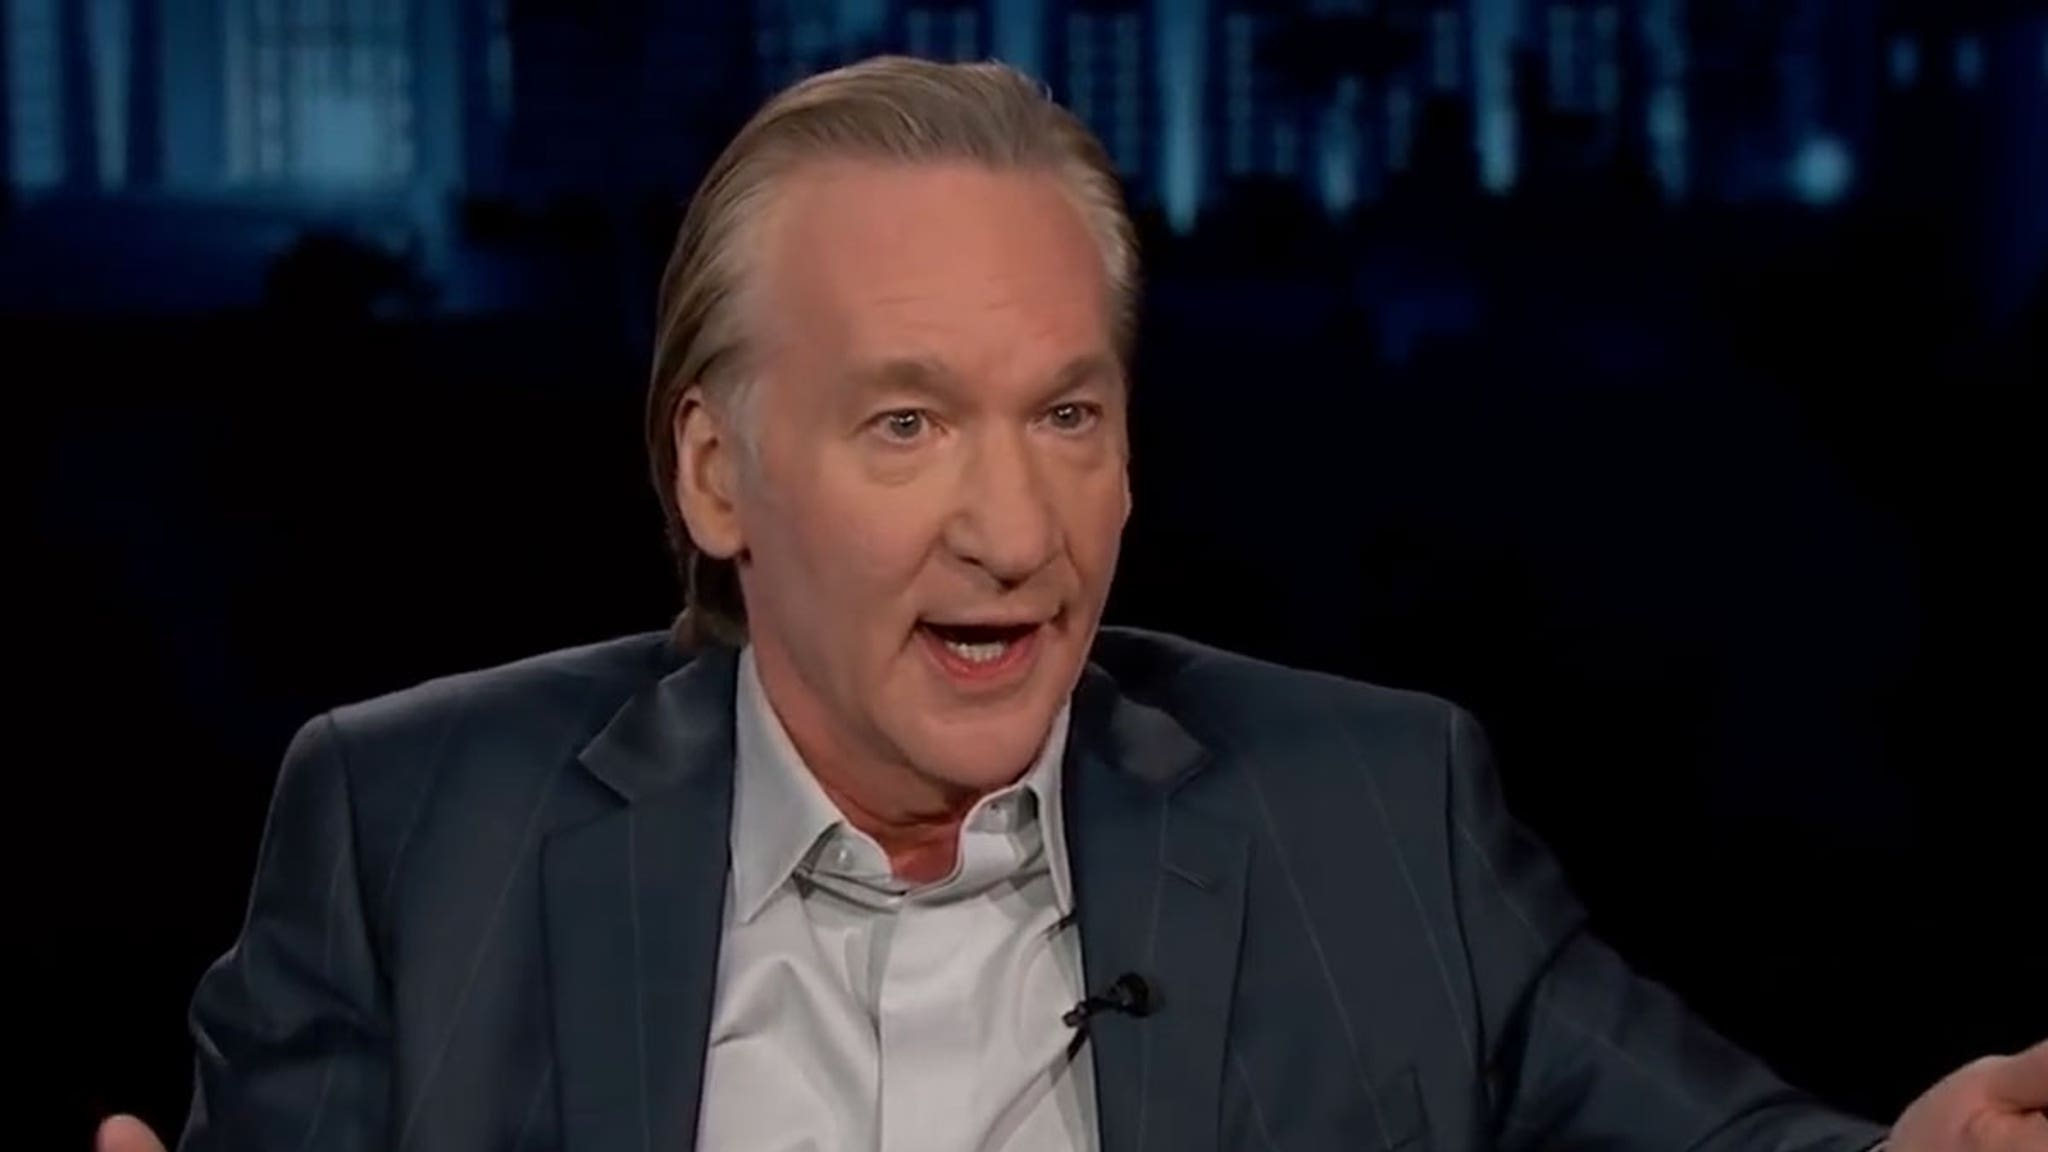 Bill Maher Criticizes RBG for Not Taking Obama's Hint to Retire